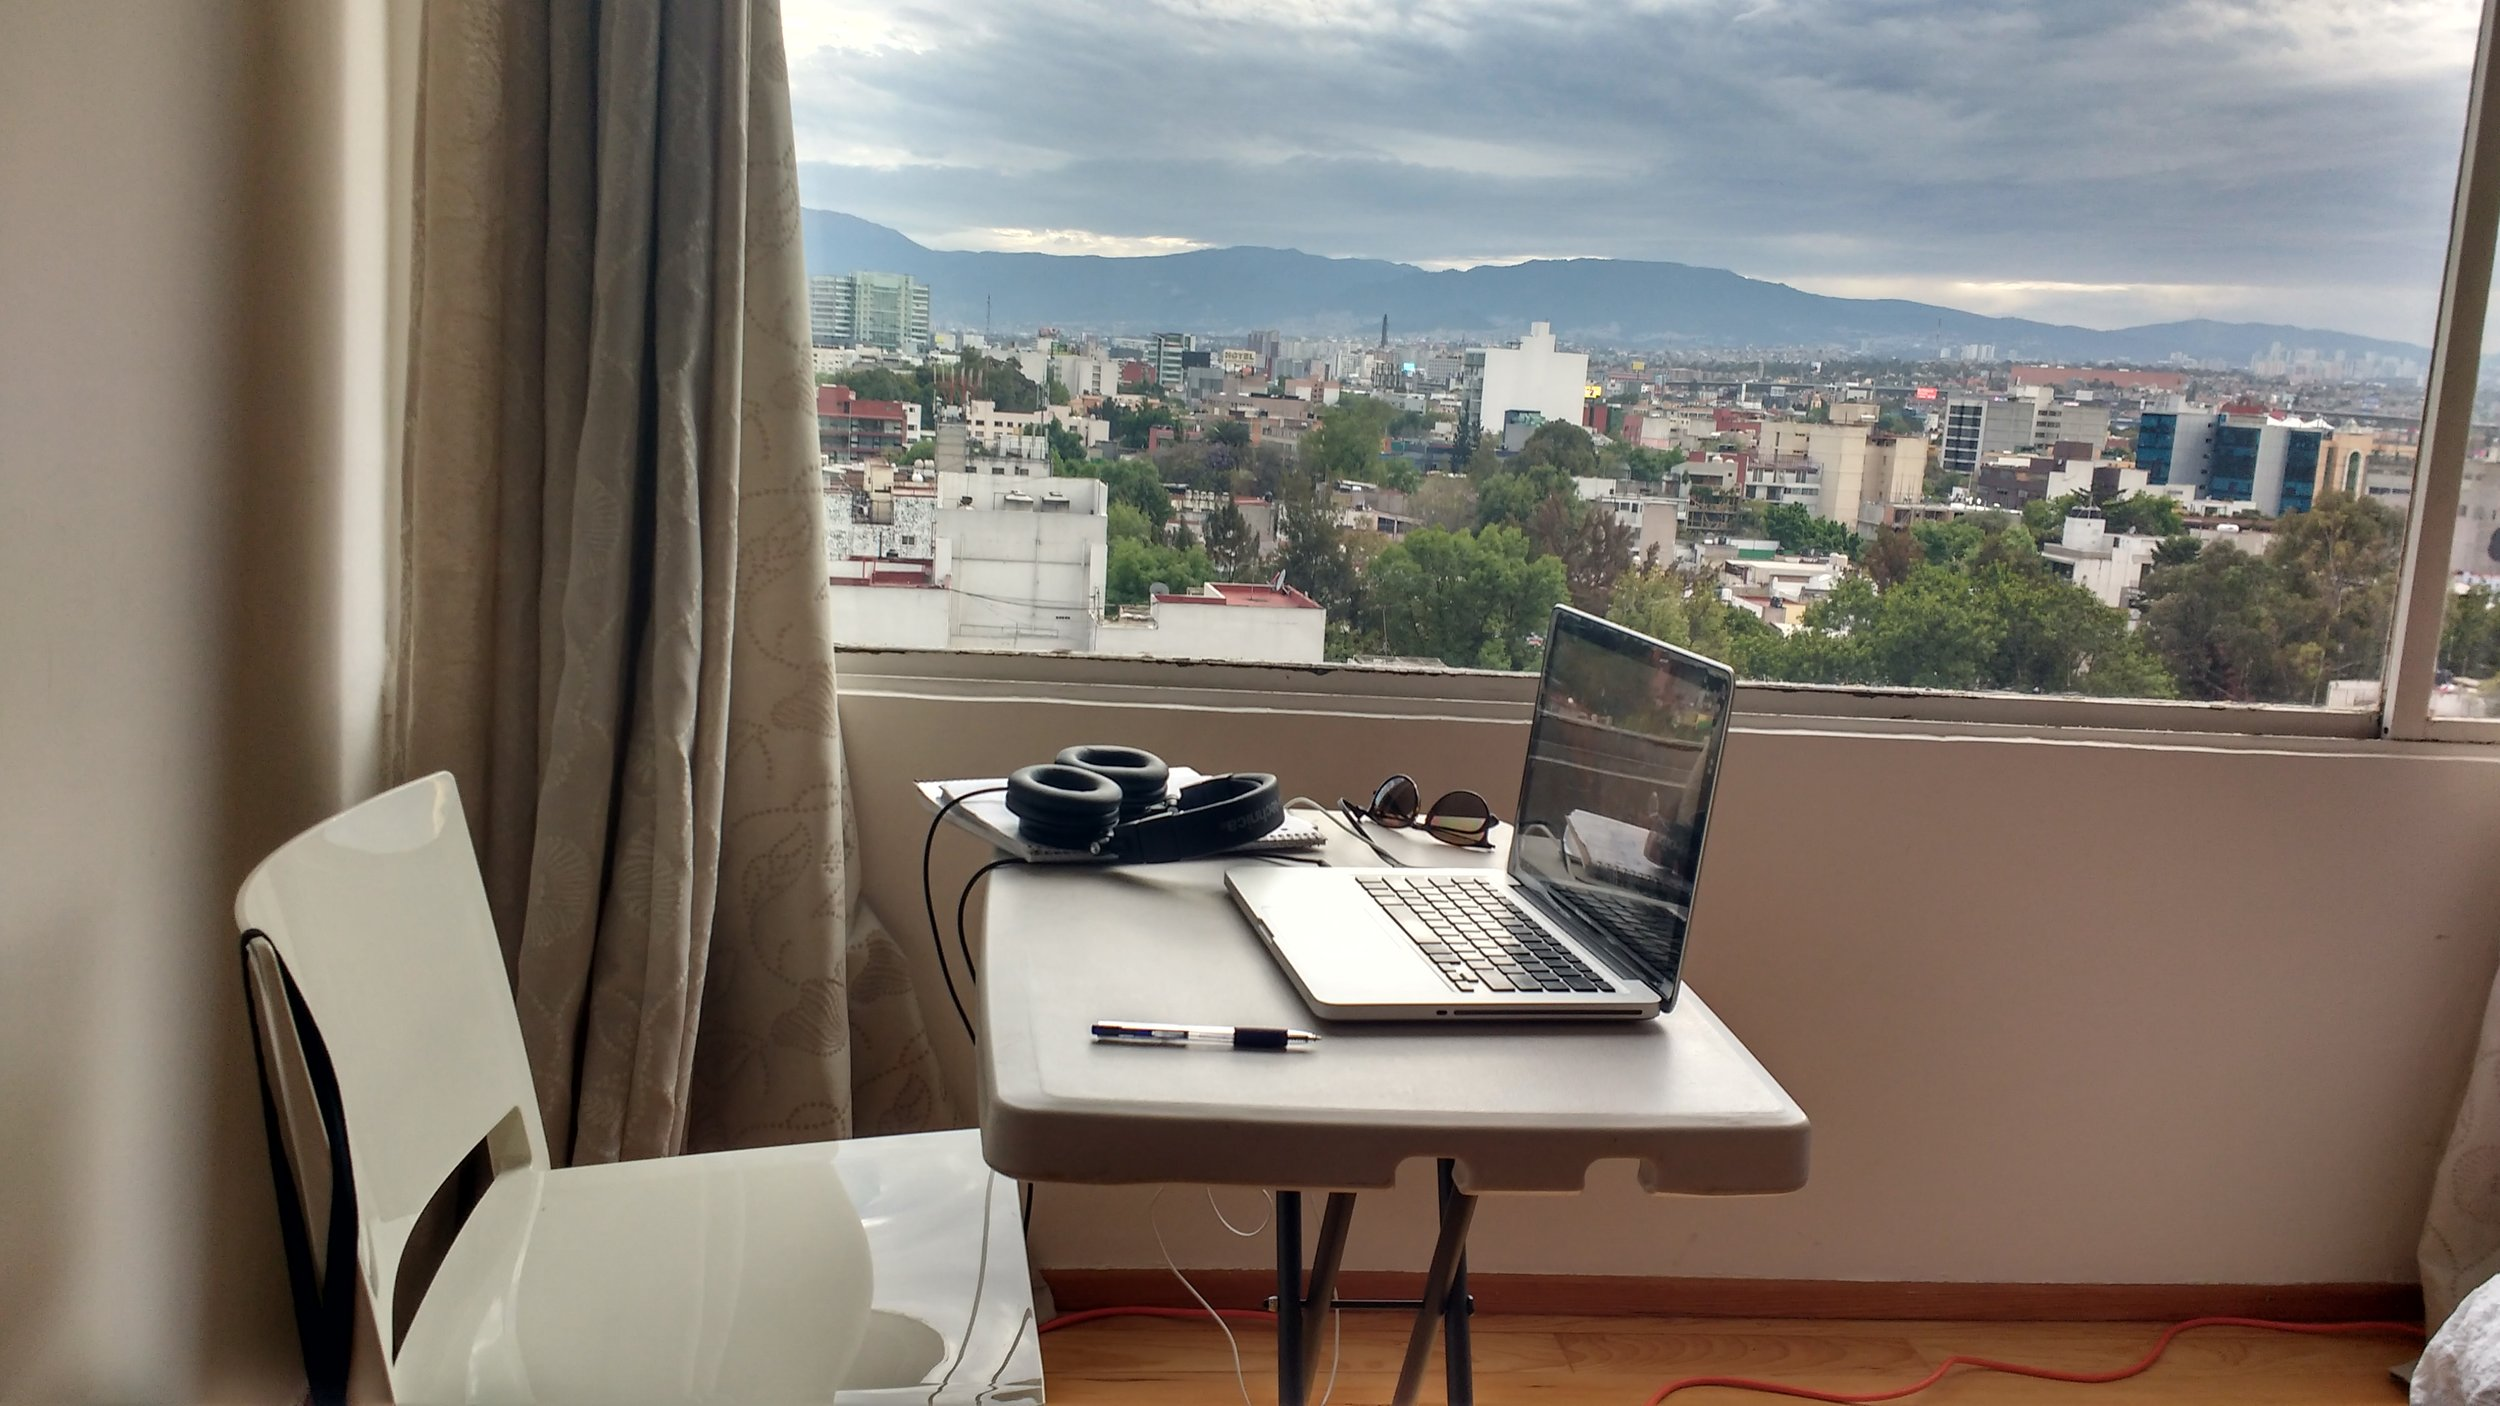 Workspace in our private room airbnb in Mexico City. This was the last time we rented a private room. My early morning classes bothered our hosts. This is why clear communication with your host is so important.